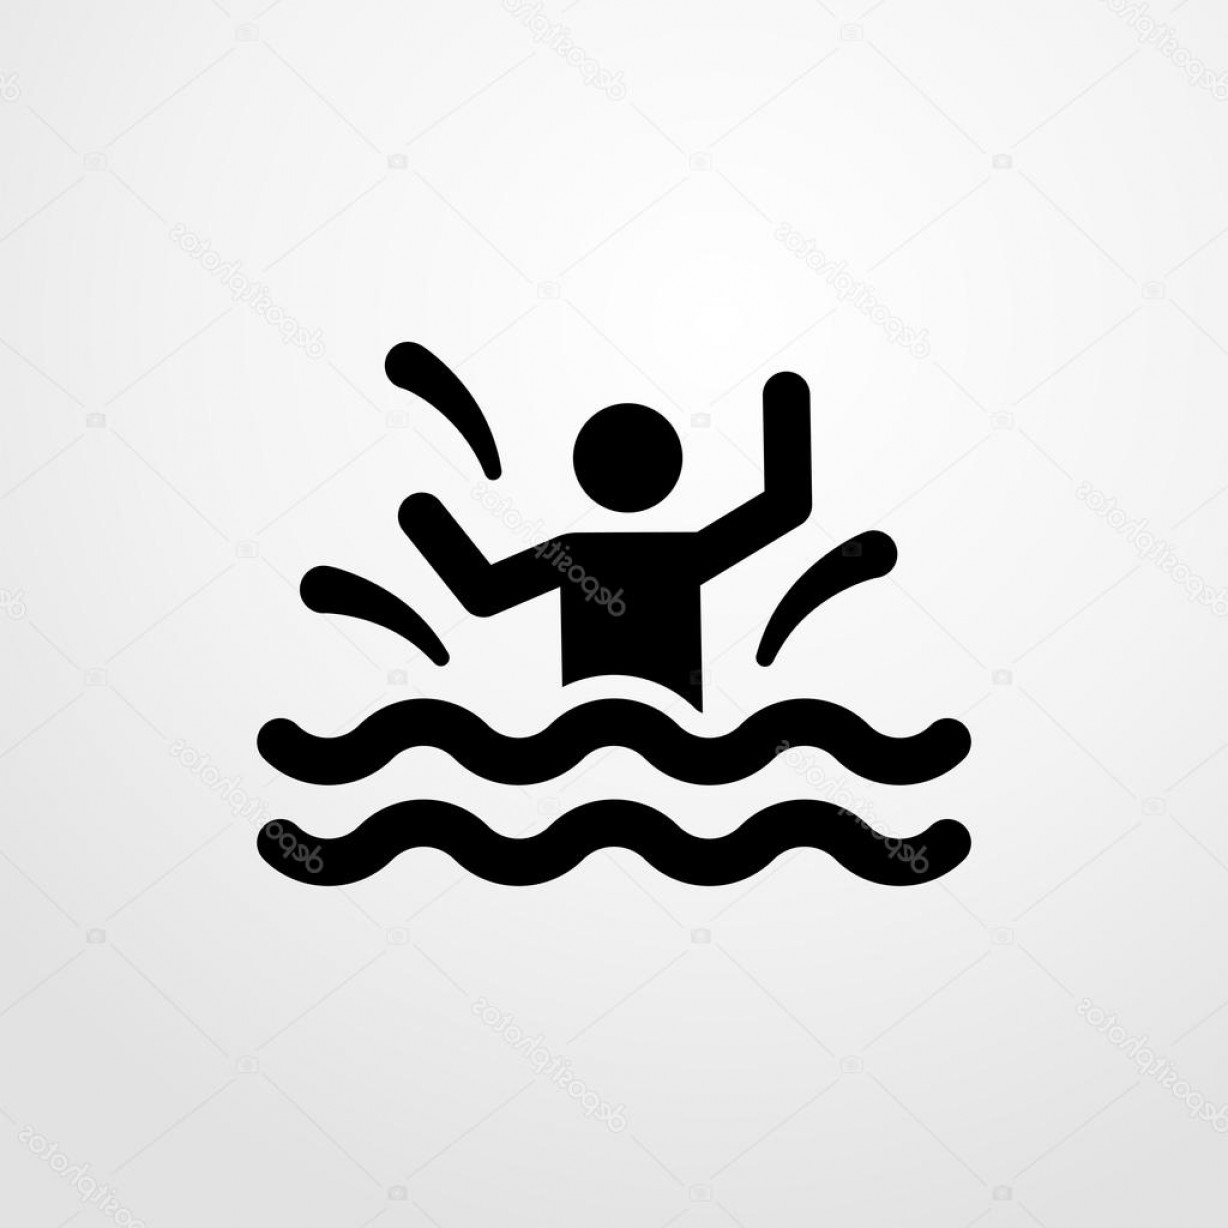 Man Drowning Vector: Stock Illustration Drowning Man Icon Drowning Man